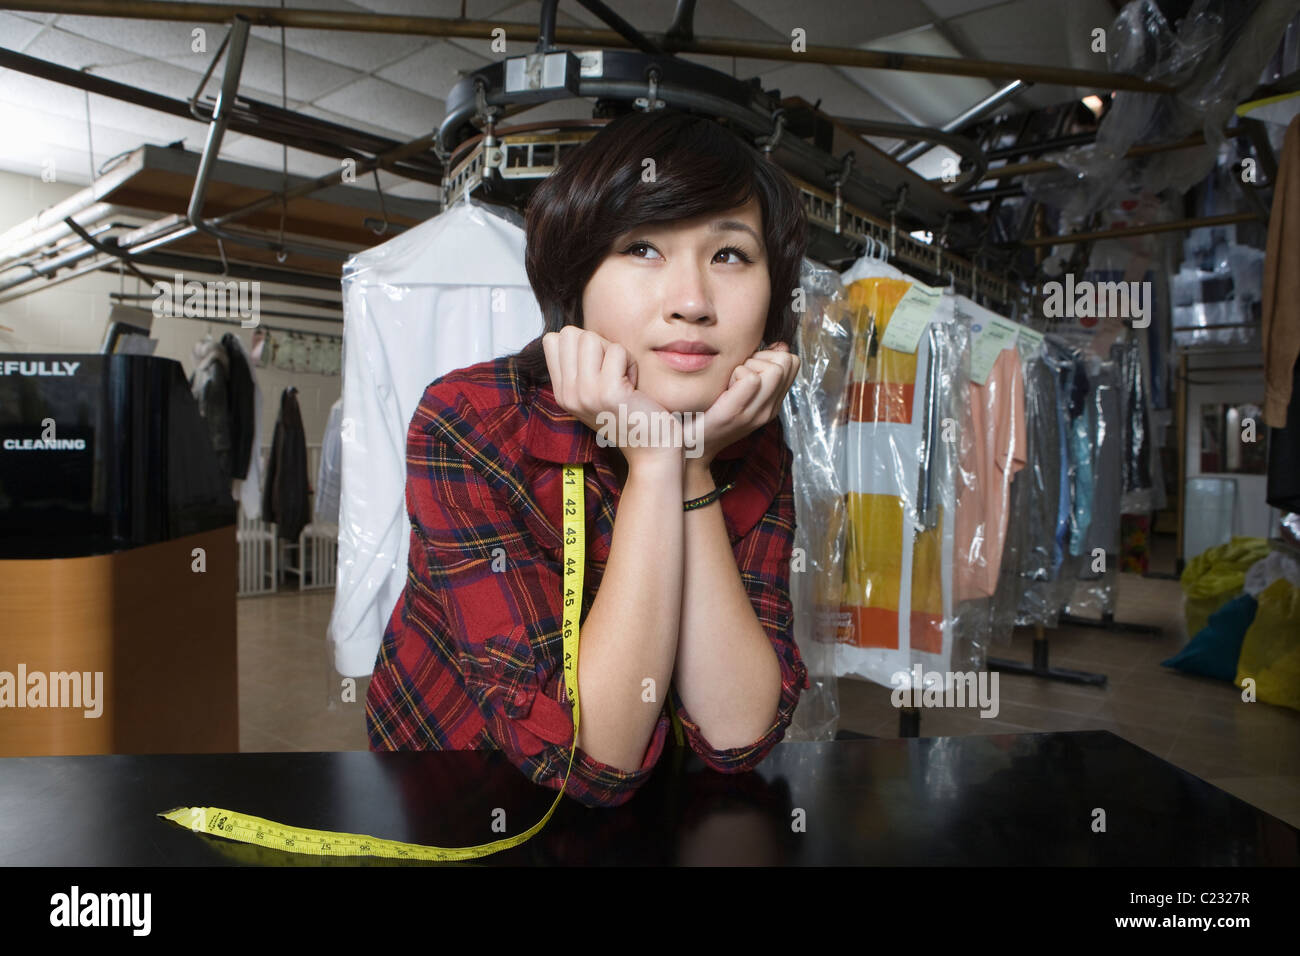 Woman working in the laundrette - Stock Image